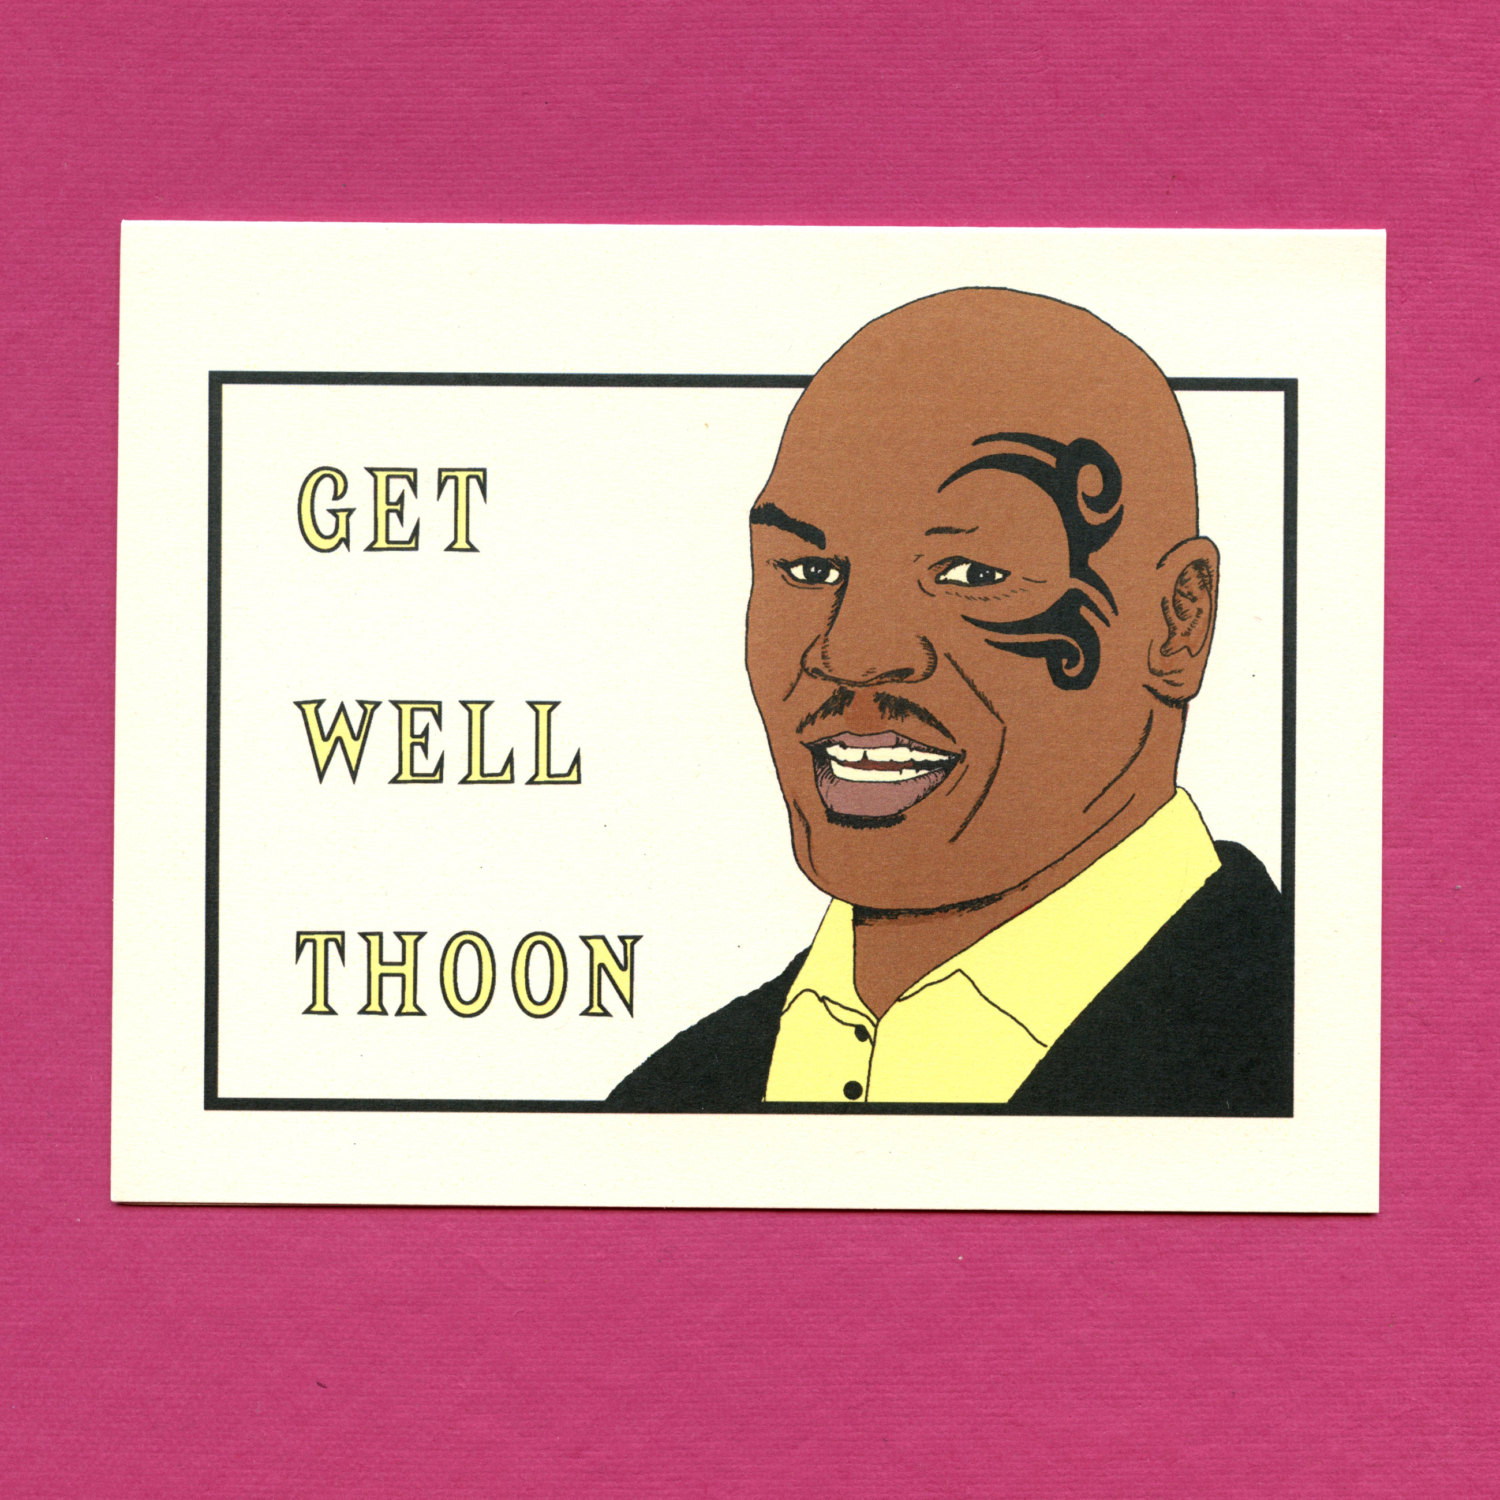 Funny Get Well Cards What Else You Enjoy Funny Get Well Card Funny